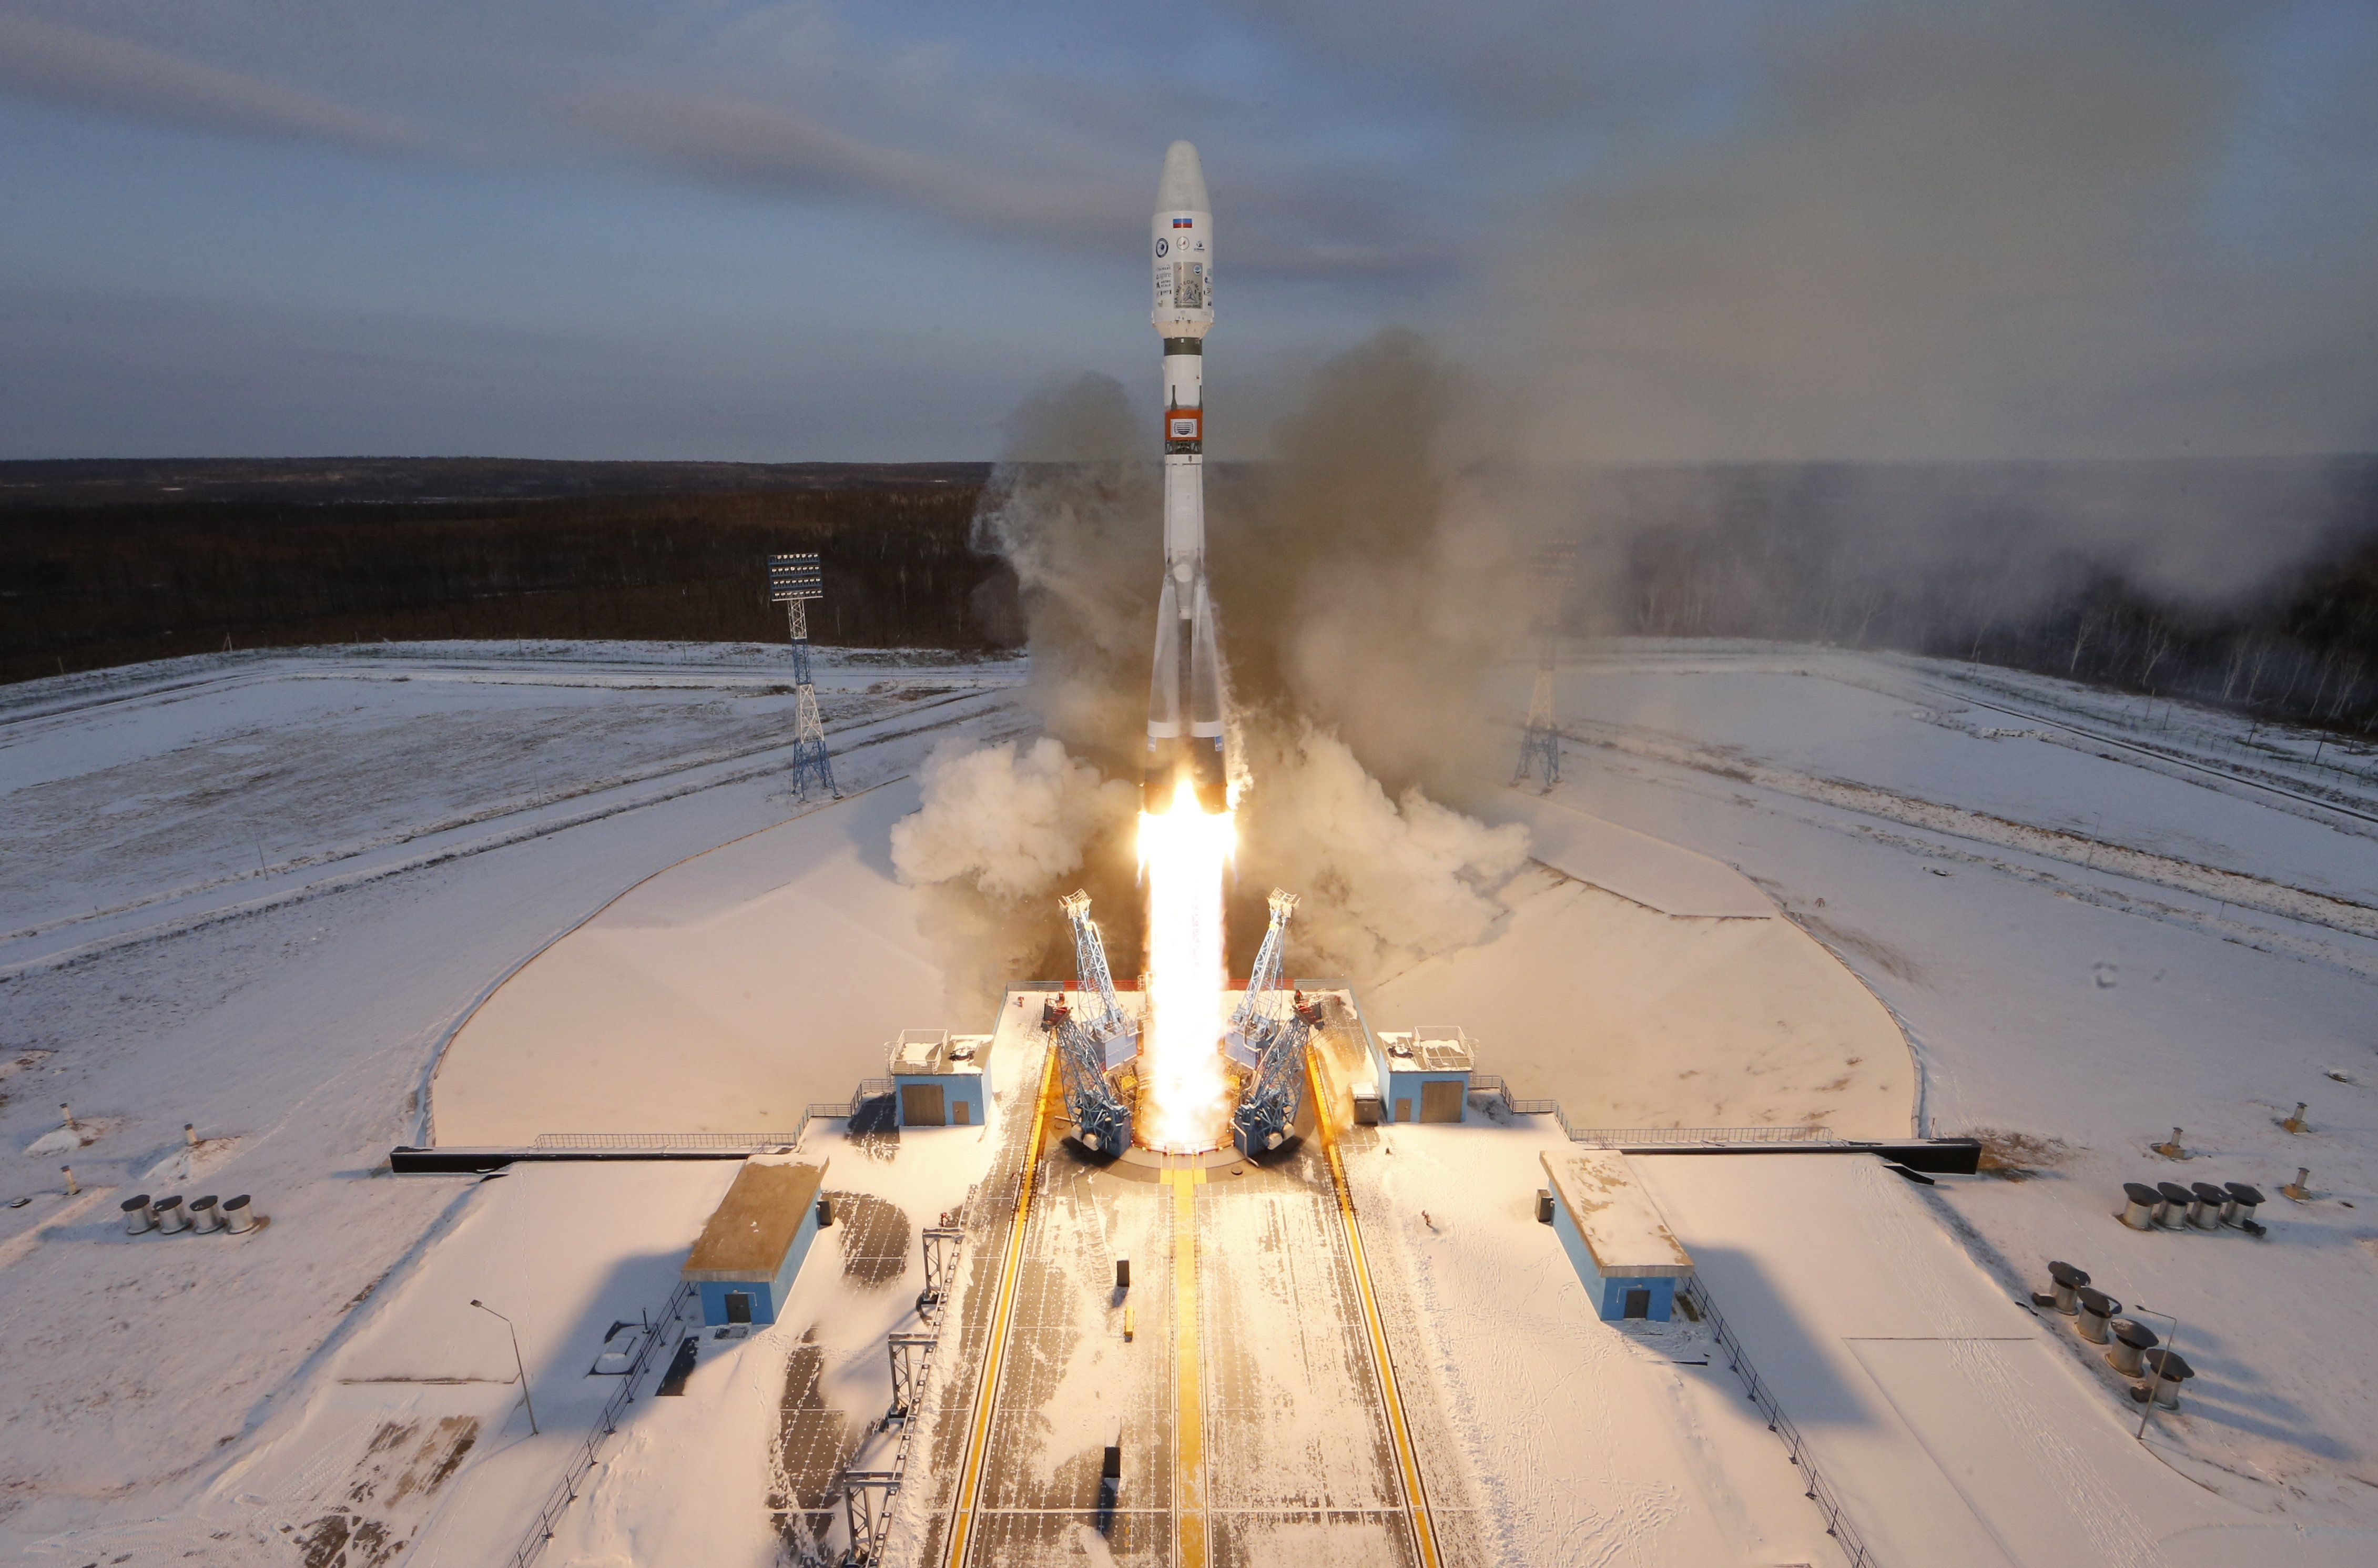 The doomed Soyuz-2 rocket launches from Russia's Vostochny Cosmodrome onNov. 28, 2017.